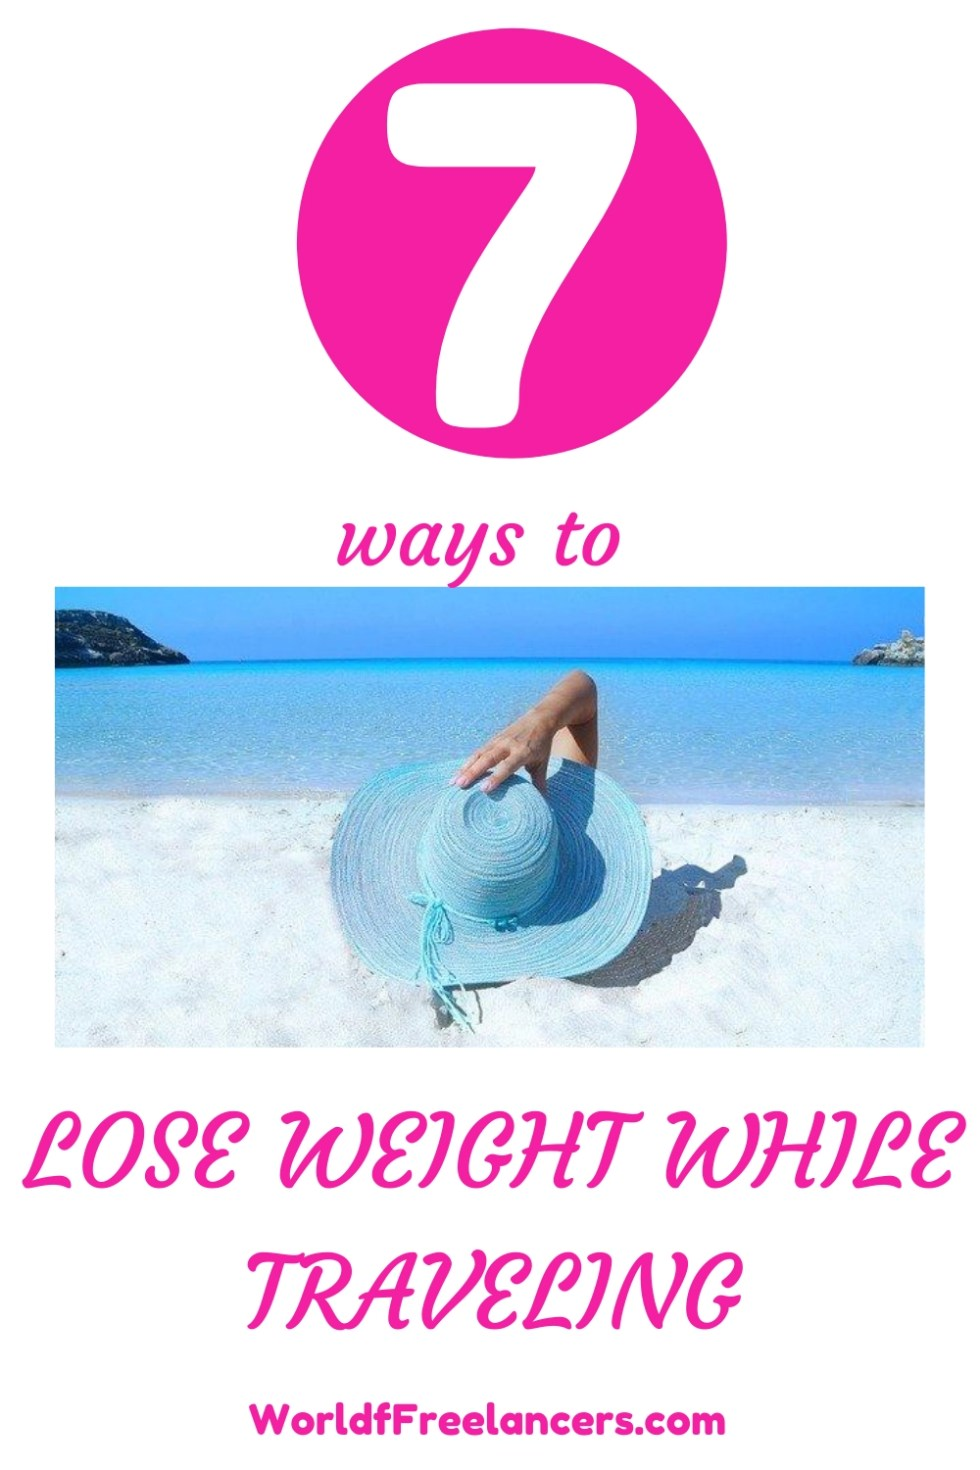 Pinterest image of woman in floppy light blue hat lying on beach with pink and white text 7 ways to lose weight while traveling